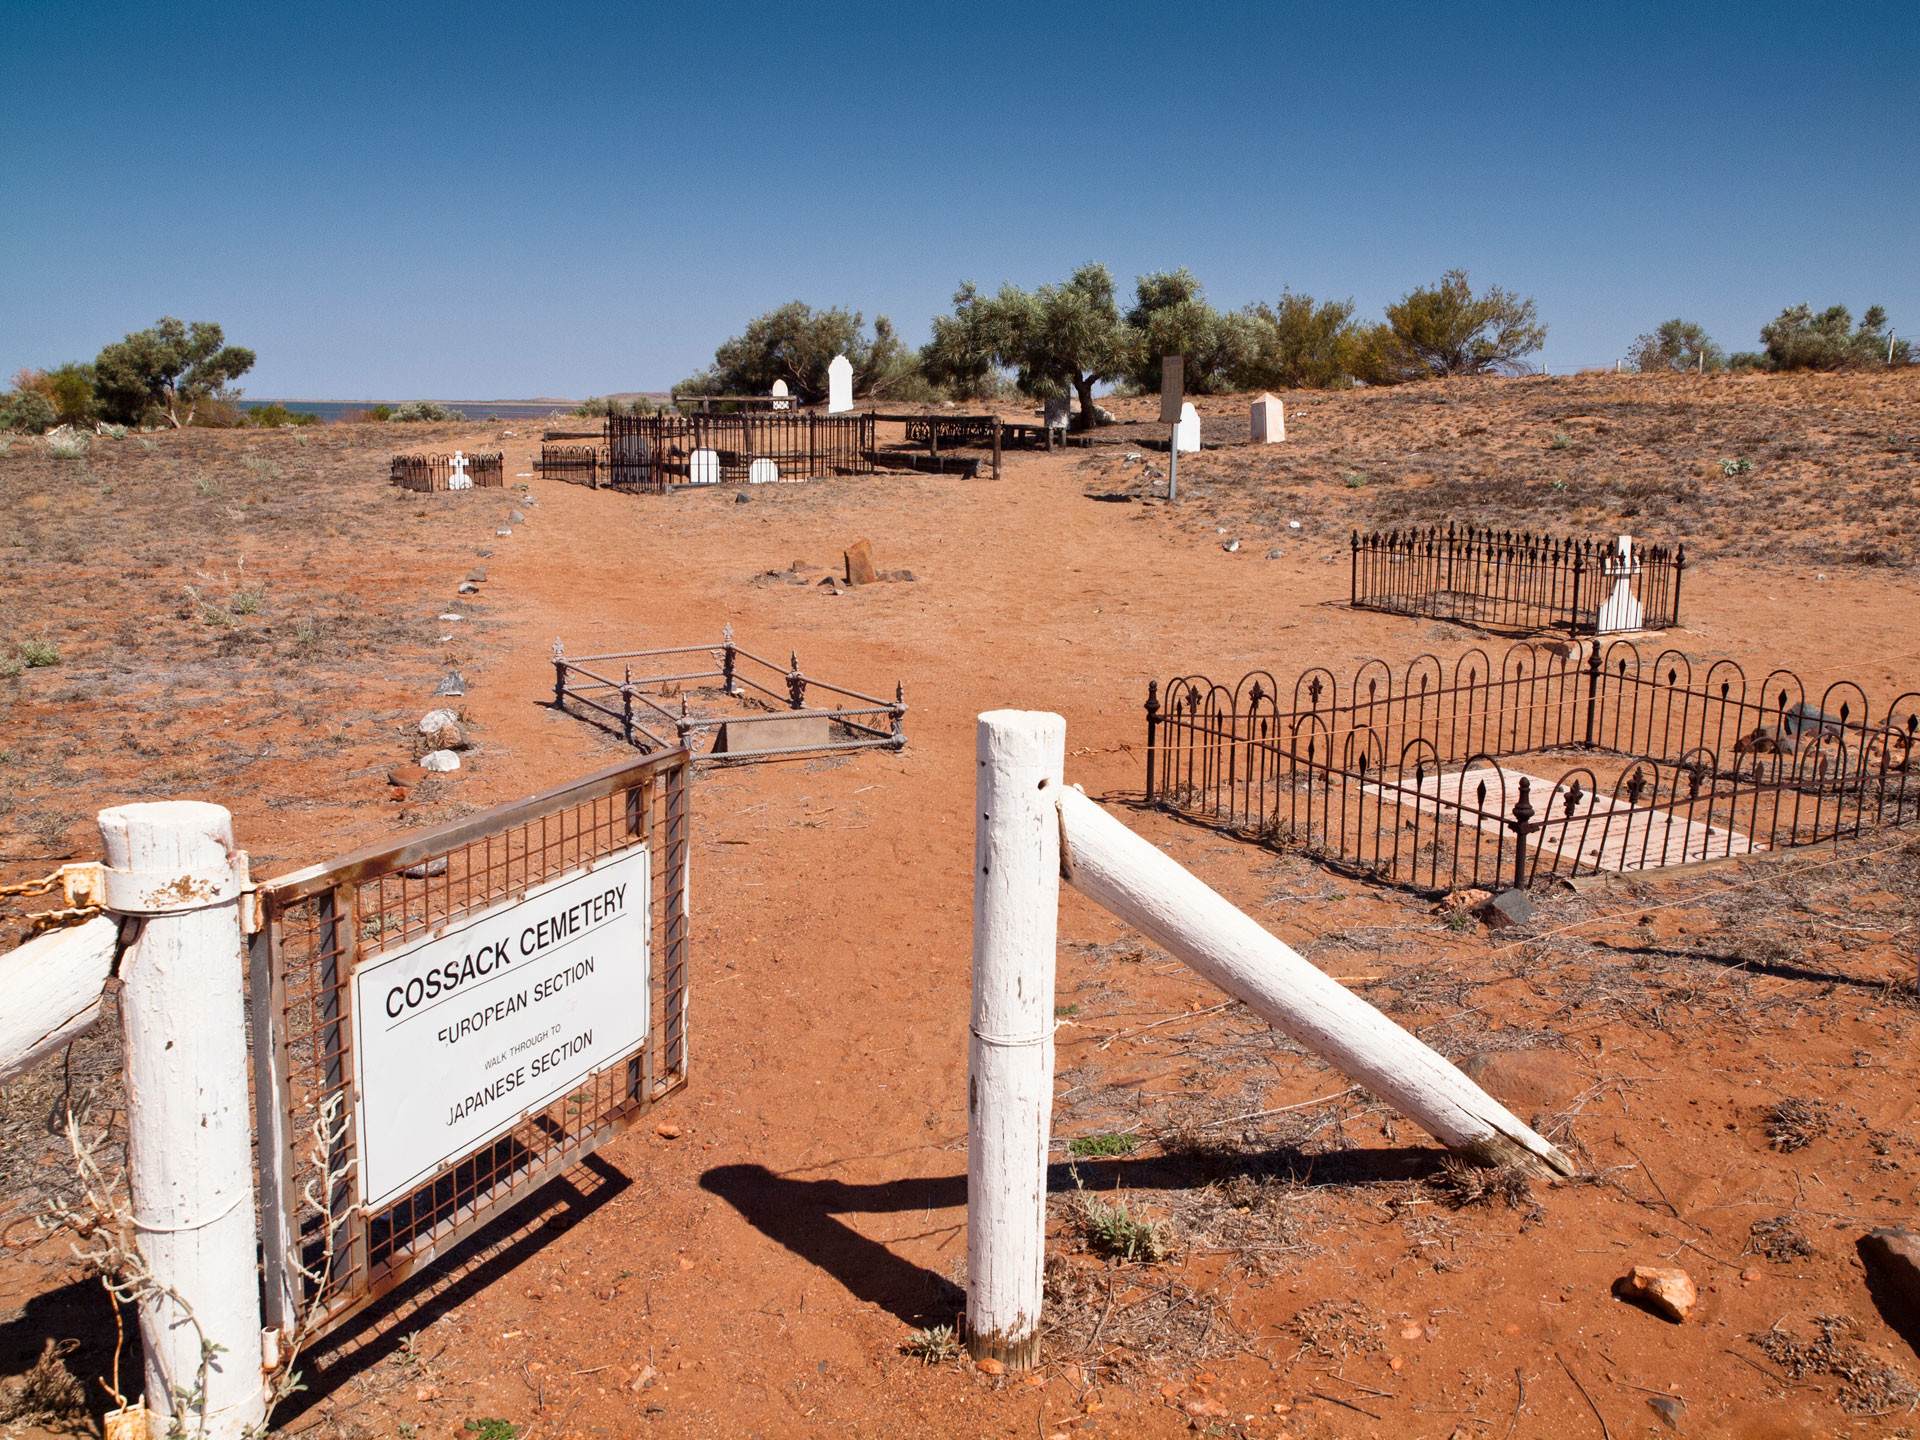 Cossack is a historic ghost town in the Pilbara region, Western Australia, and was famous for pearls and gold in the 1800s.